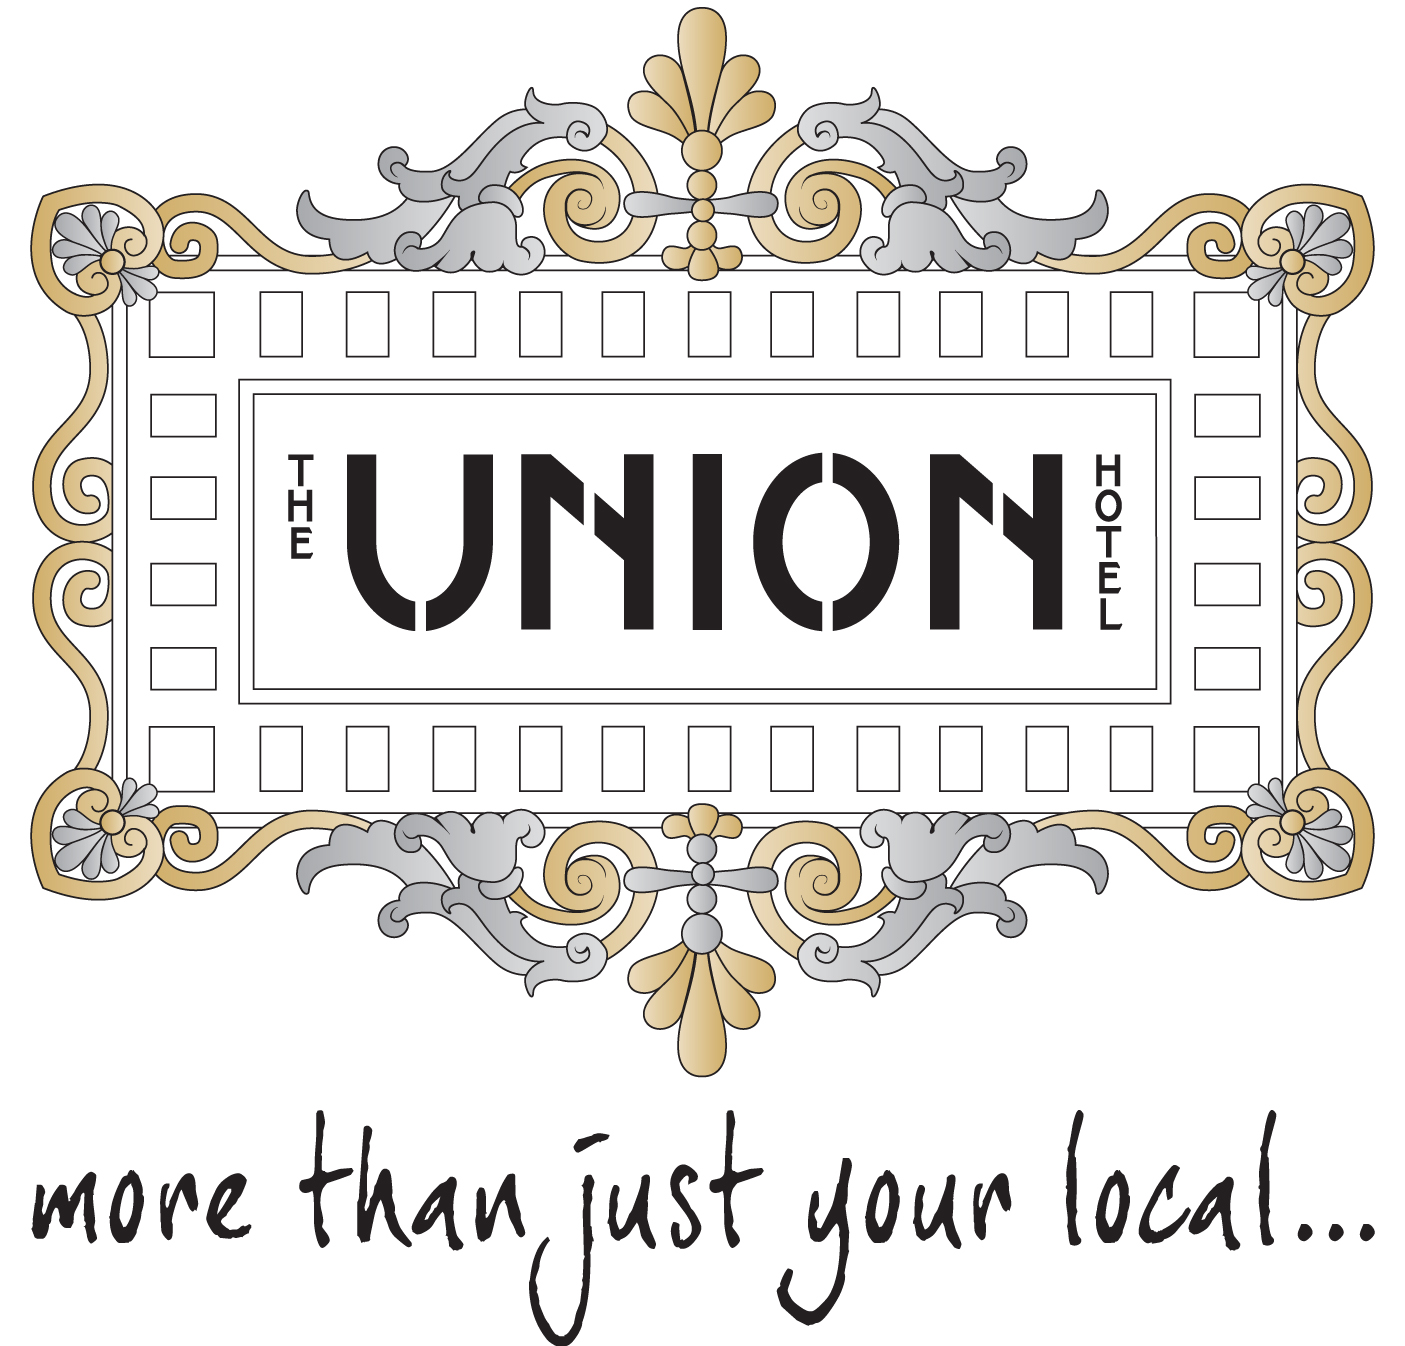 The Union Hotel Logo and Images